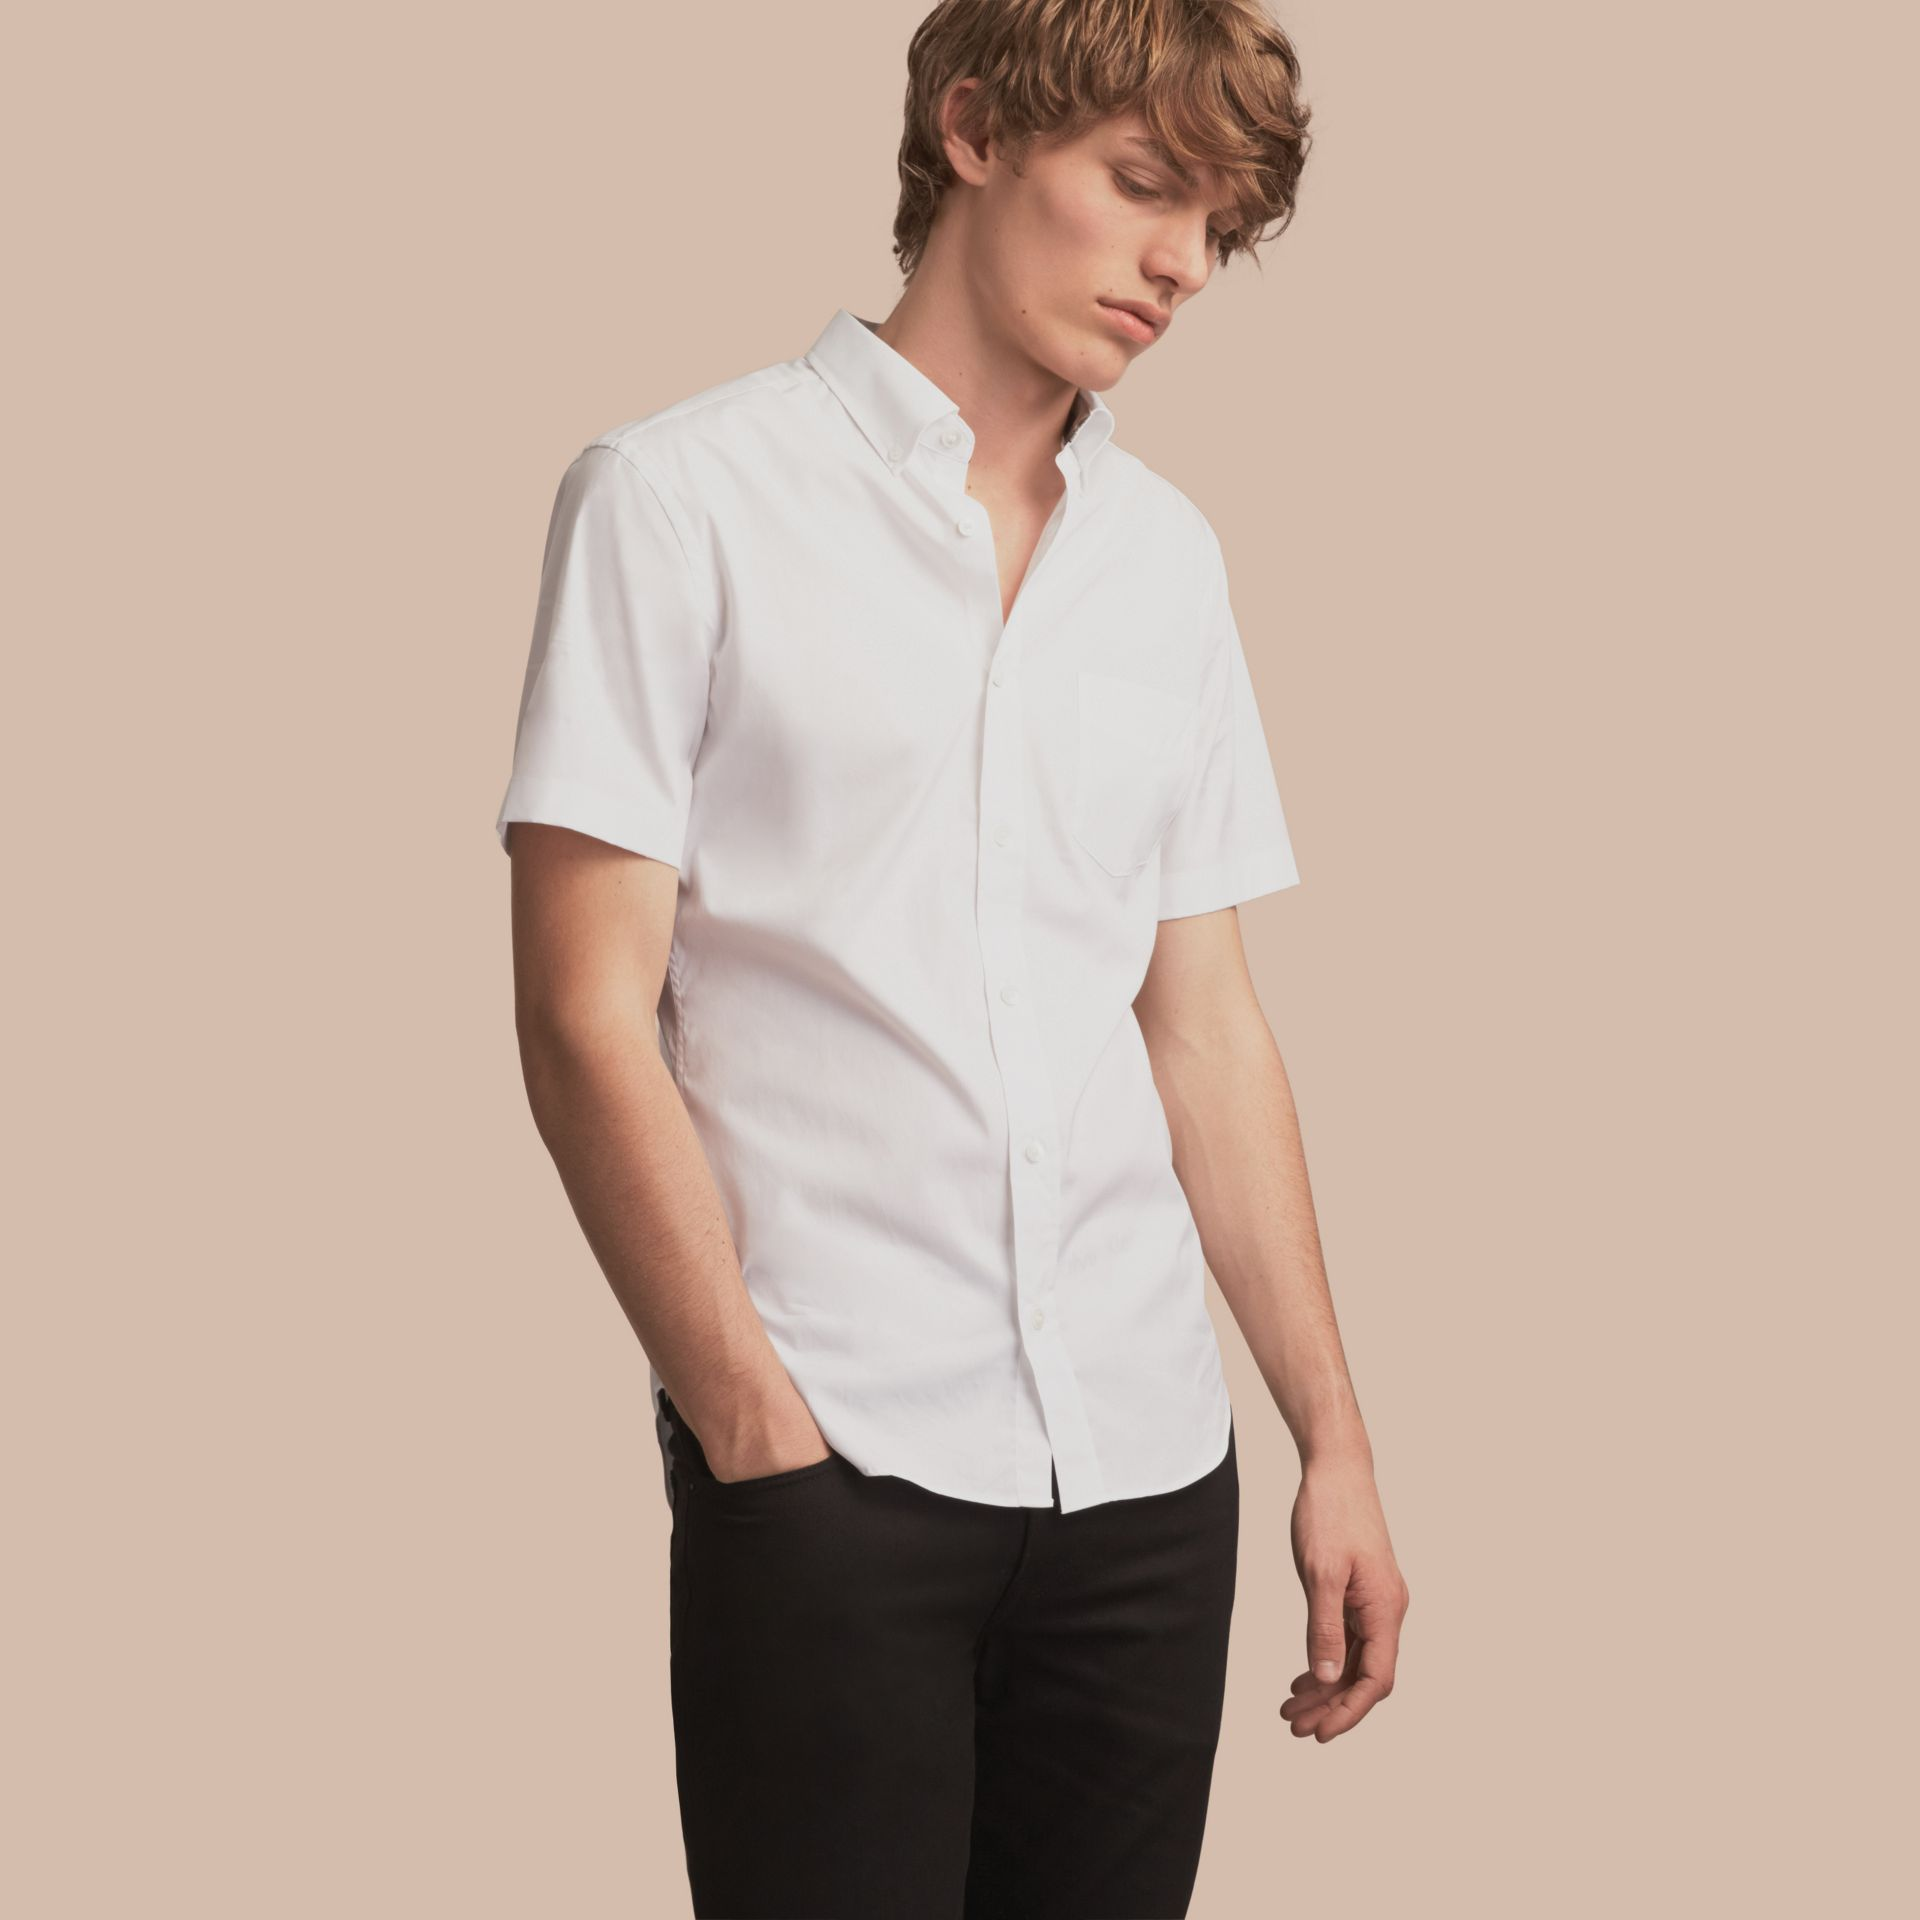 White Short-sleeved Stretch Cotton Poplin Shirt White - gallery image 1